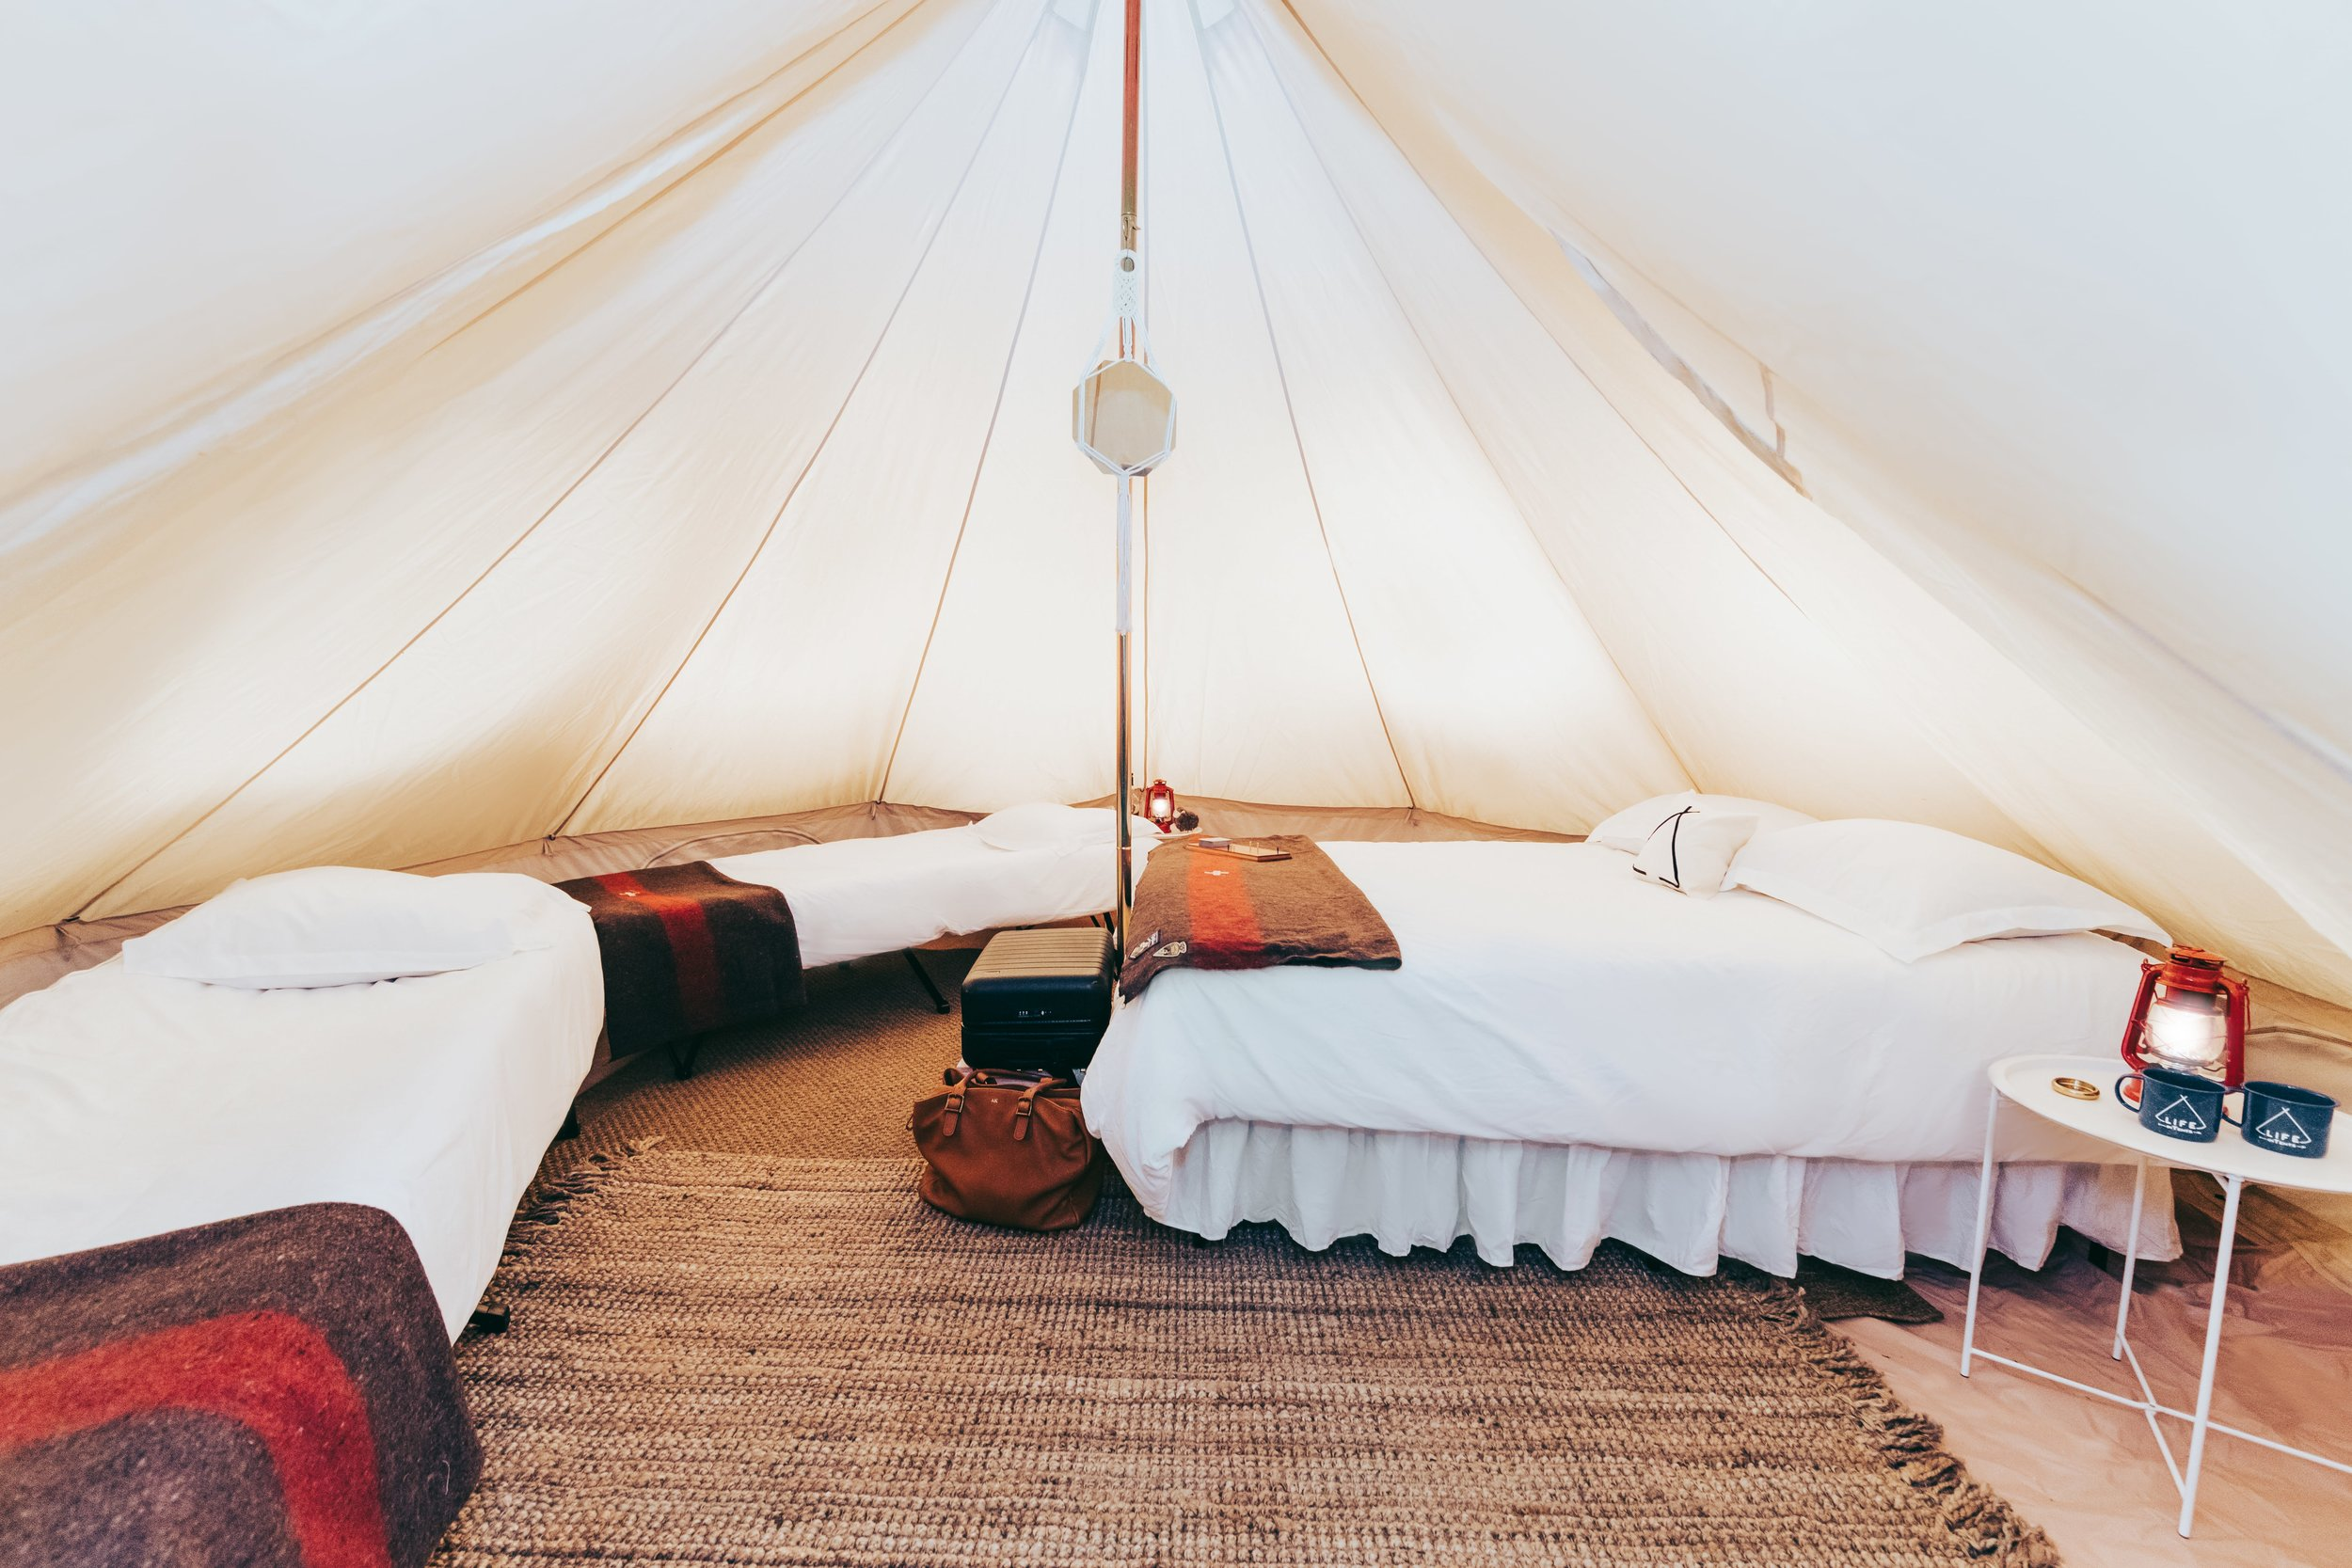 Add 2 cots to your glamping tent